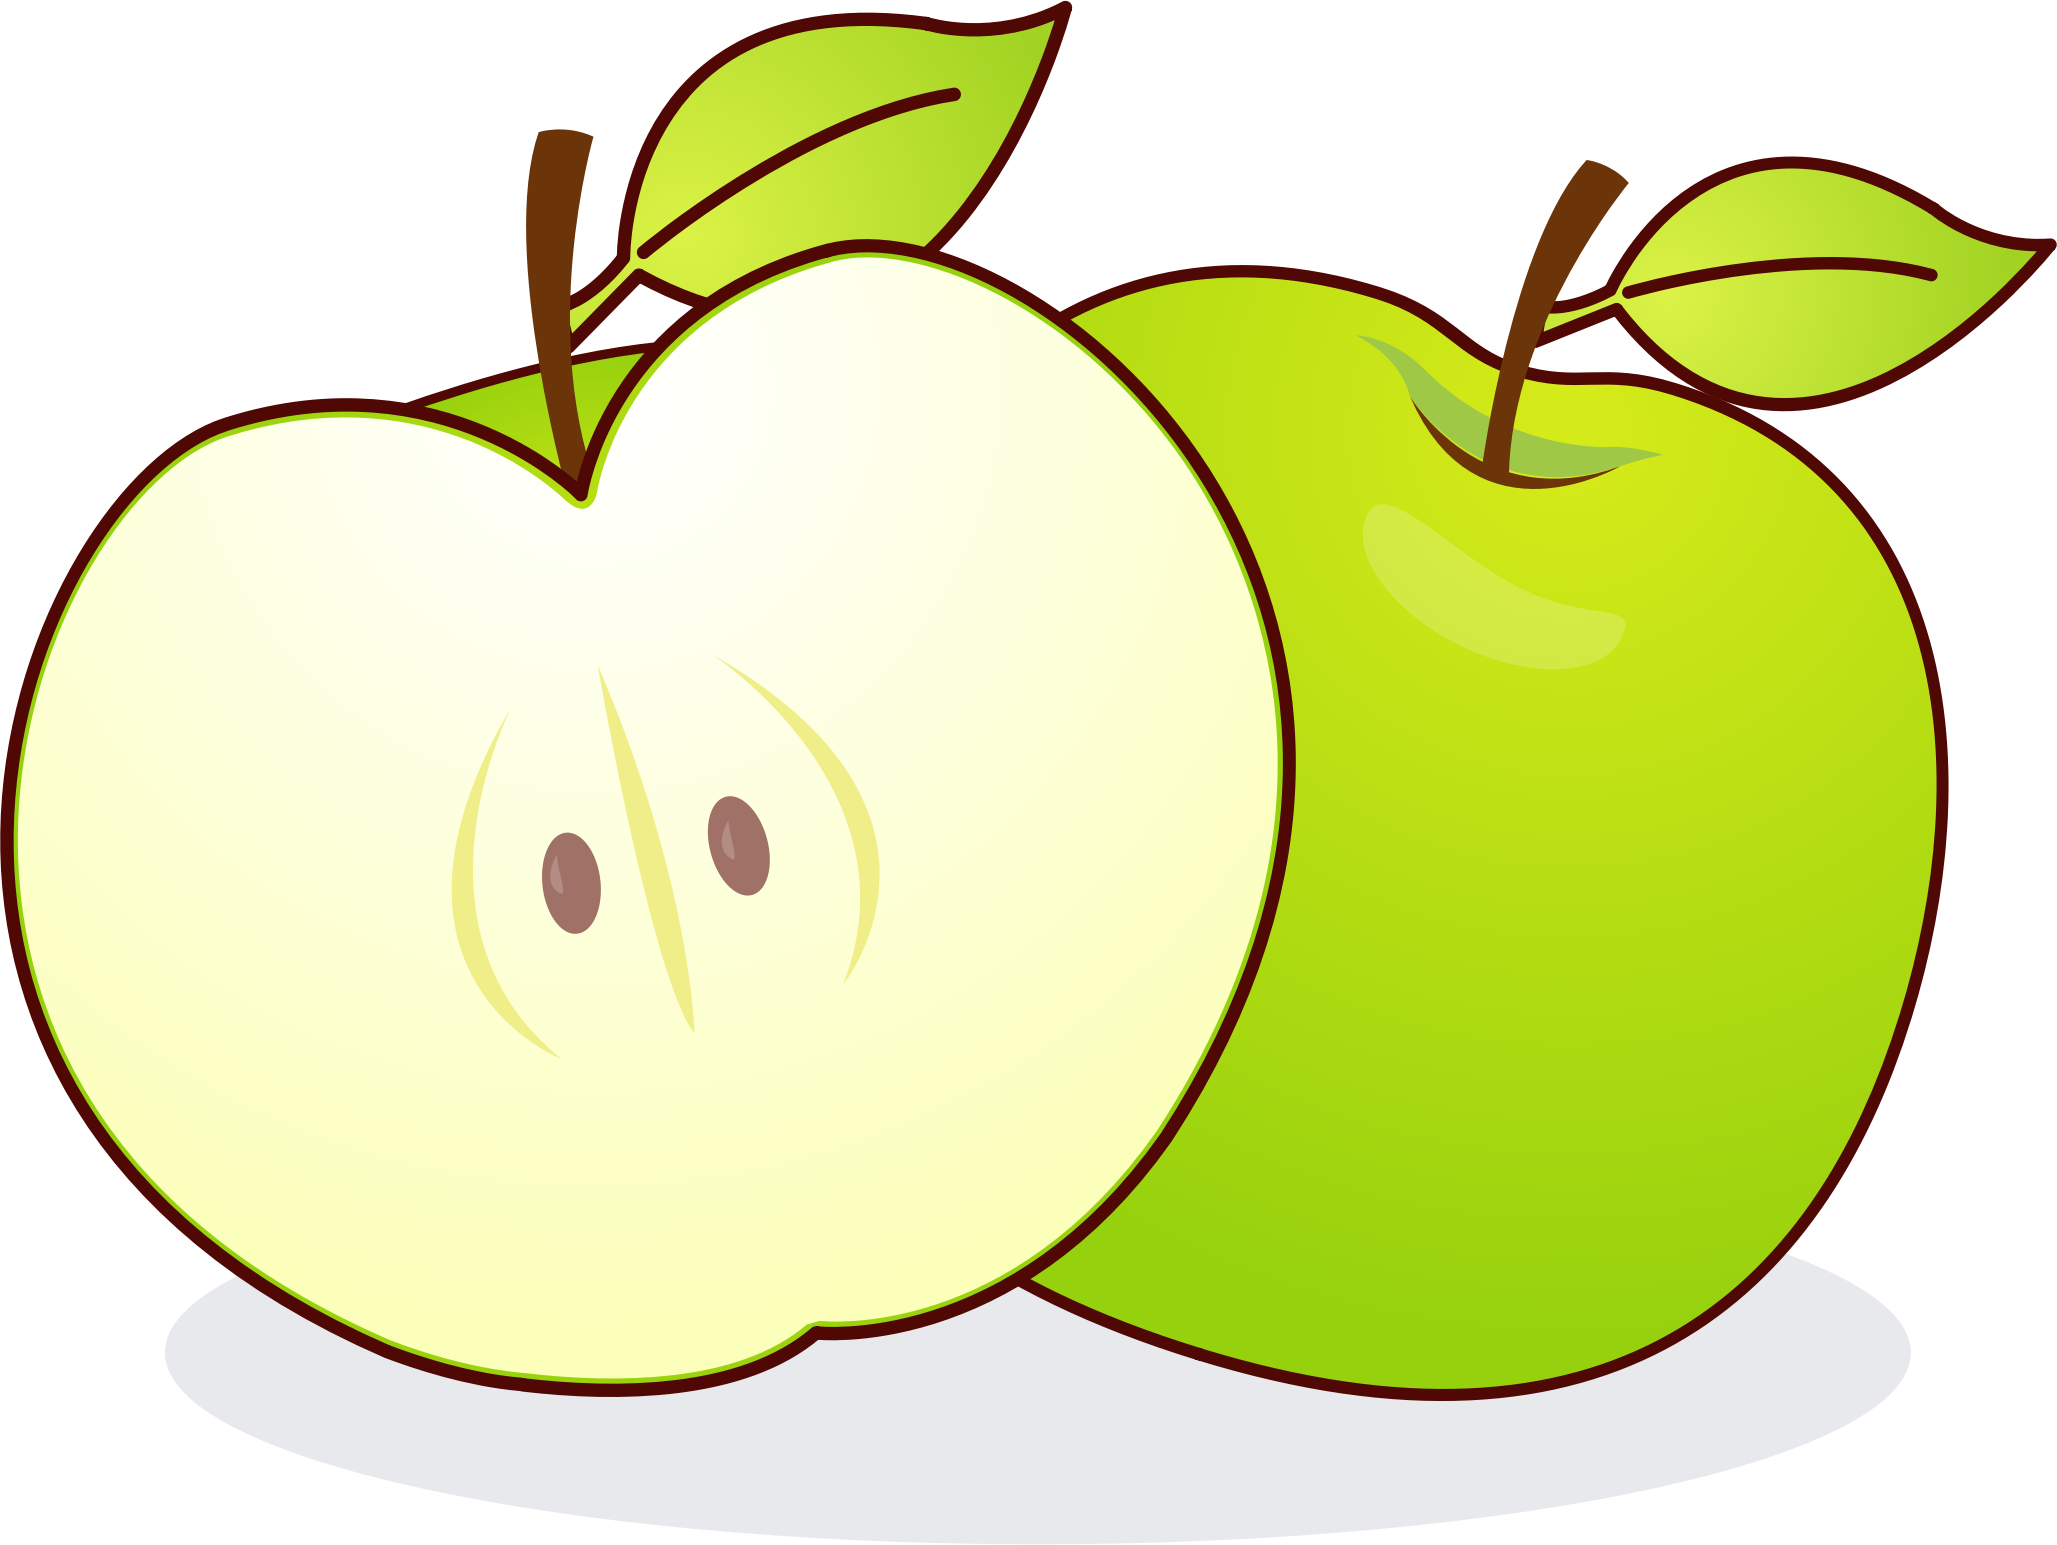 Inside apple clipart banner stock 28+ Collection of Inside Of An Apple Clipart | High quality, free ... banner stock